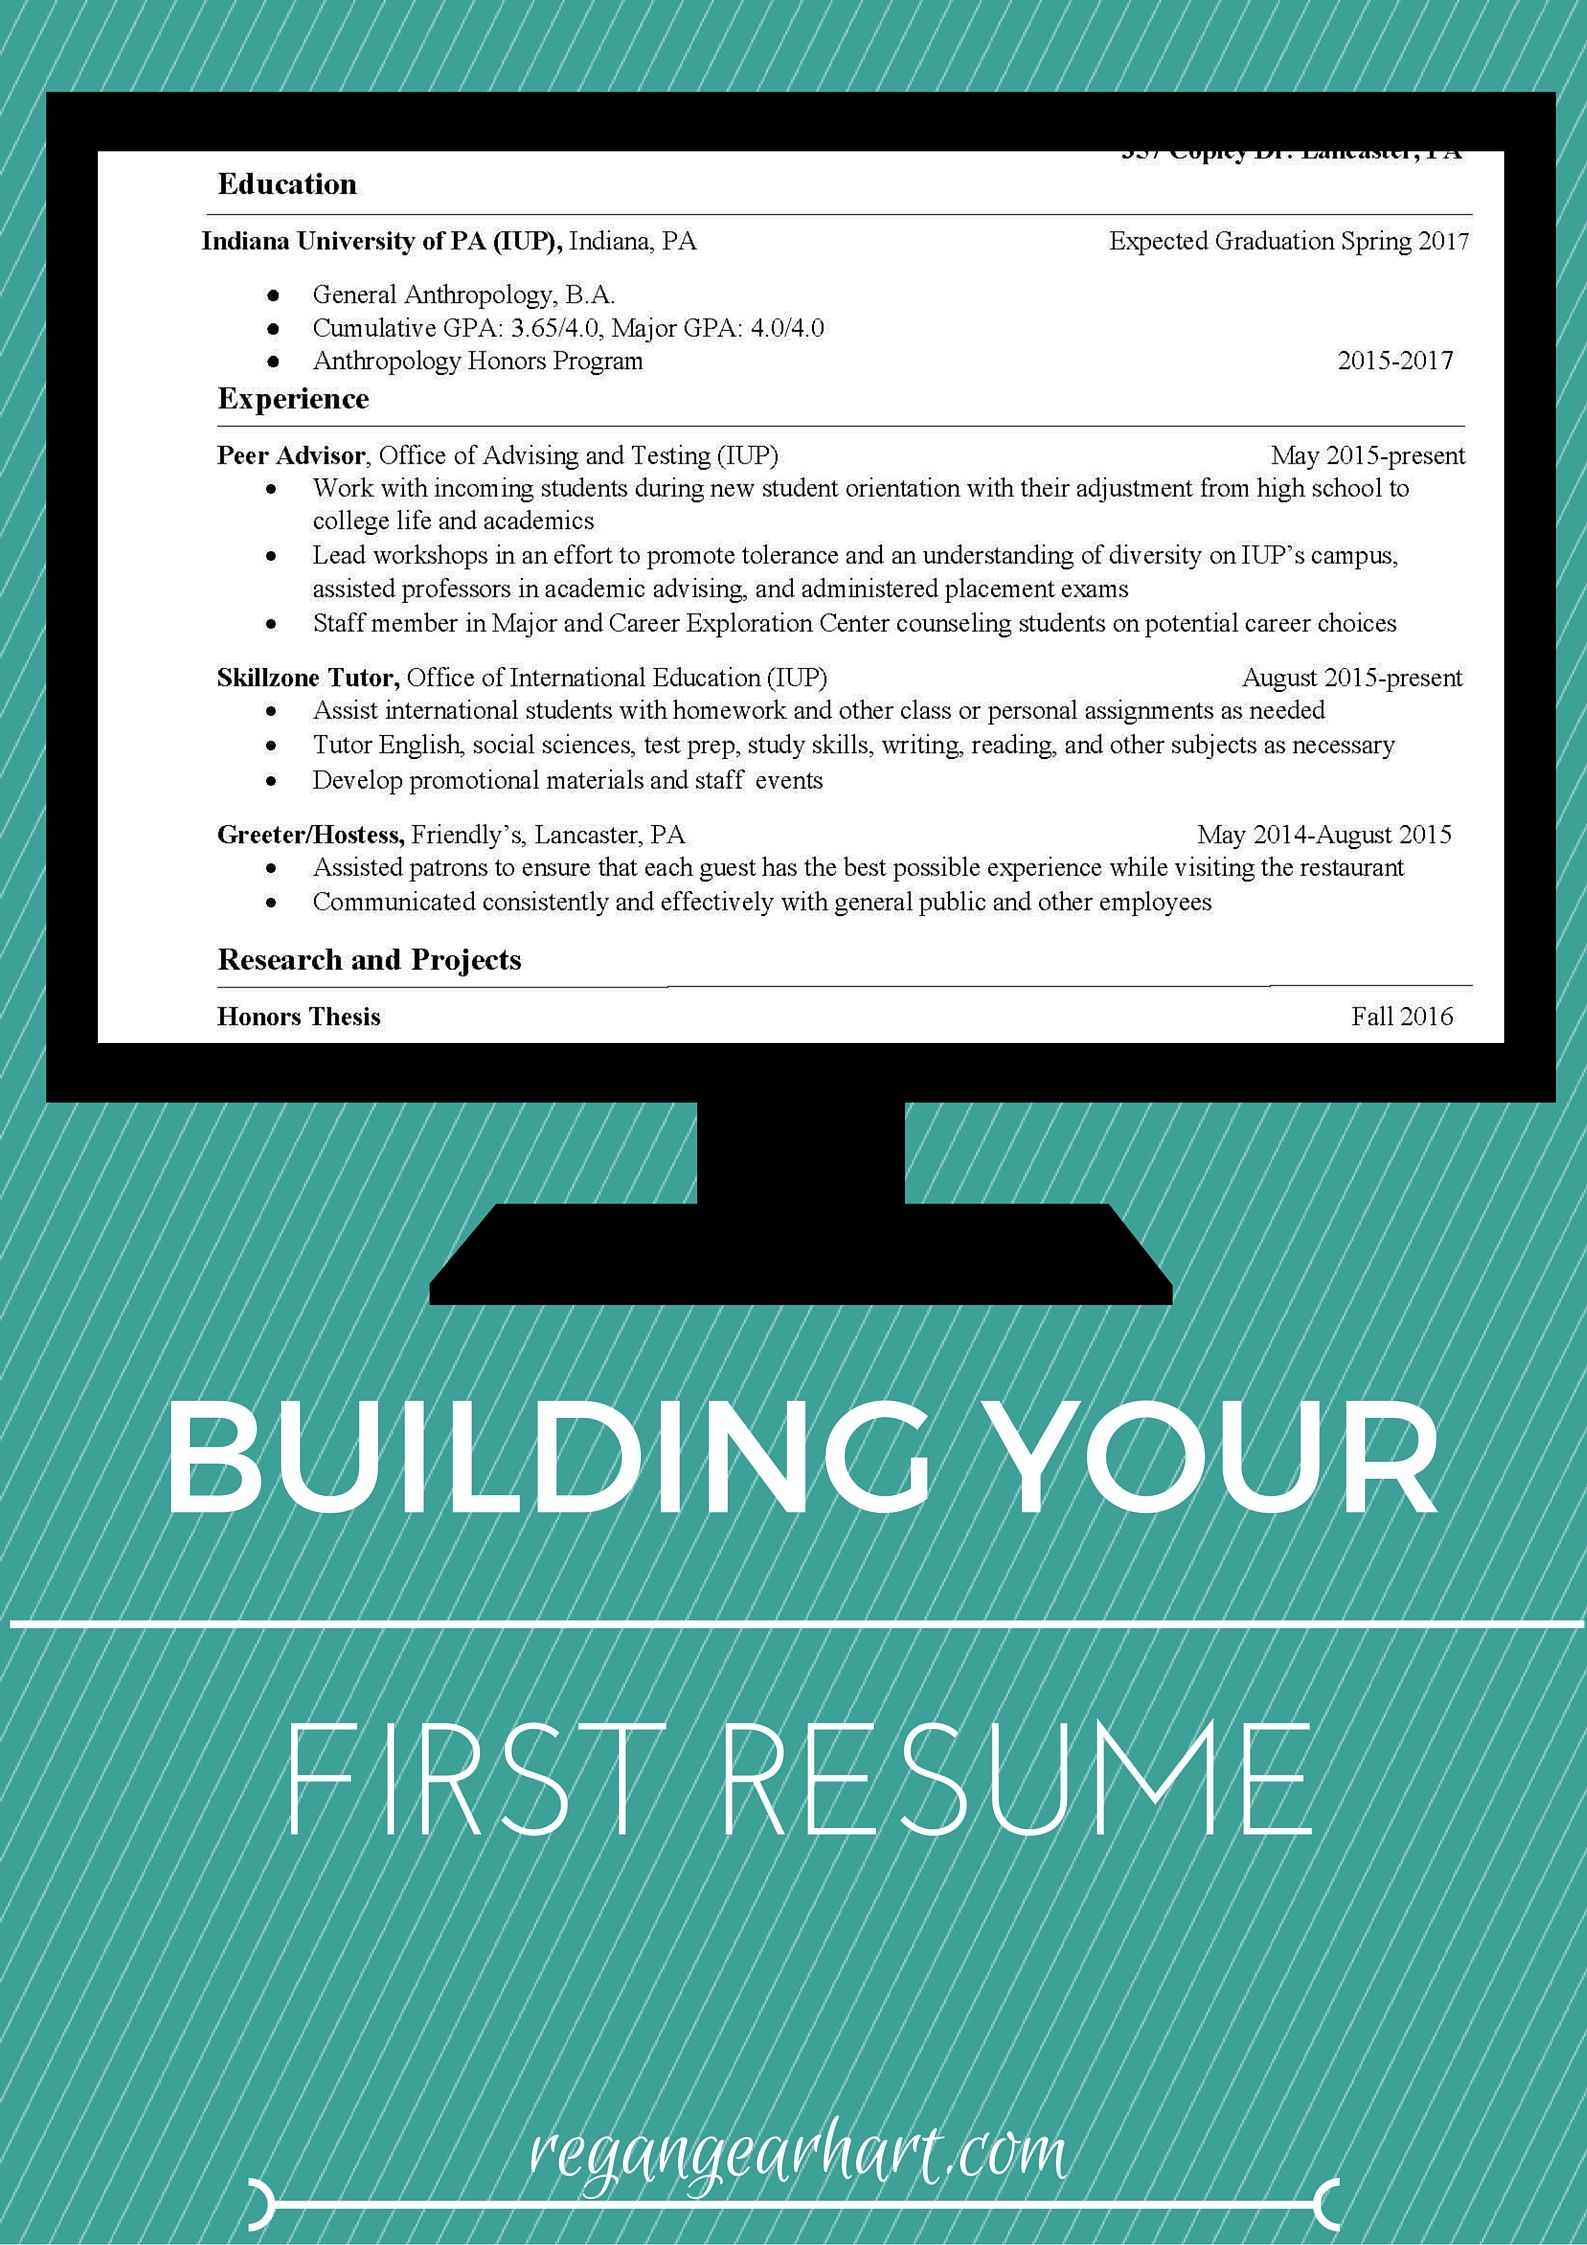 Resume Tips And Tricks Tips And Tricks On How To Start Building Your First Resume